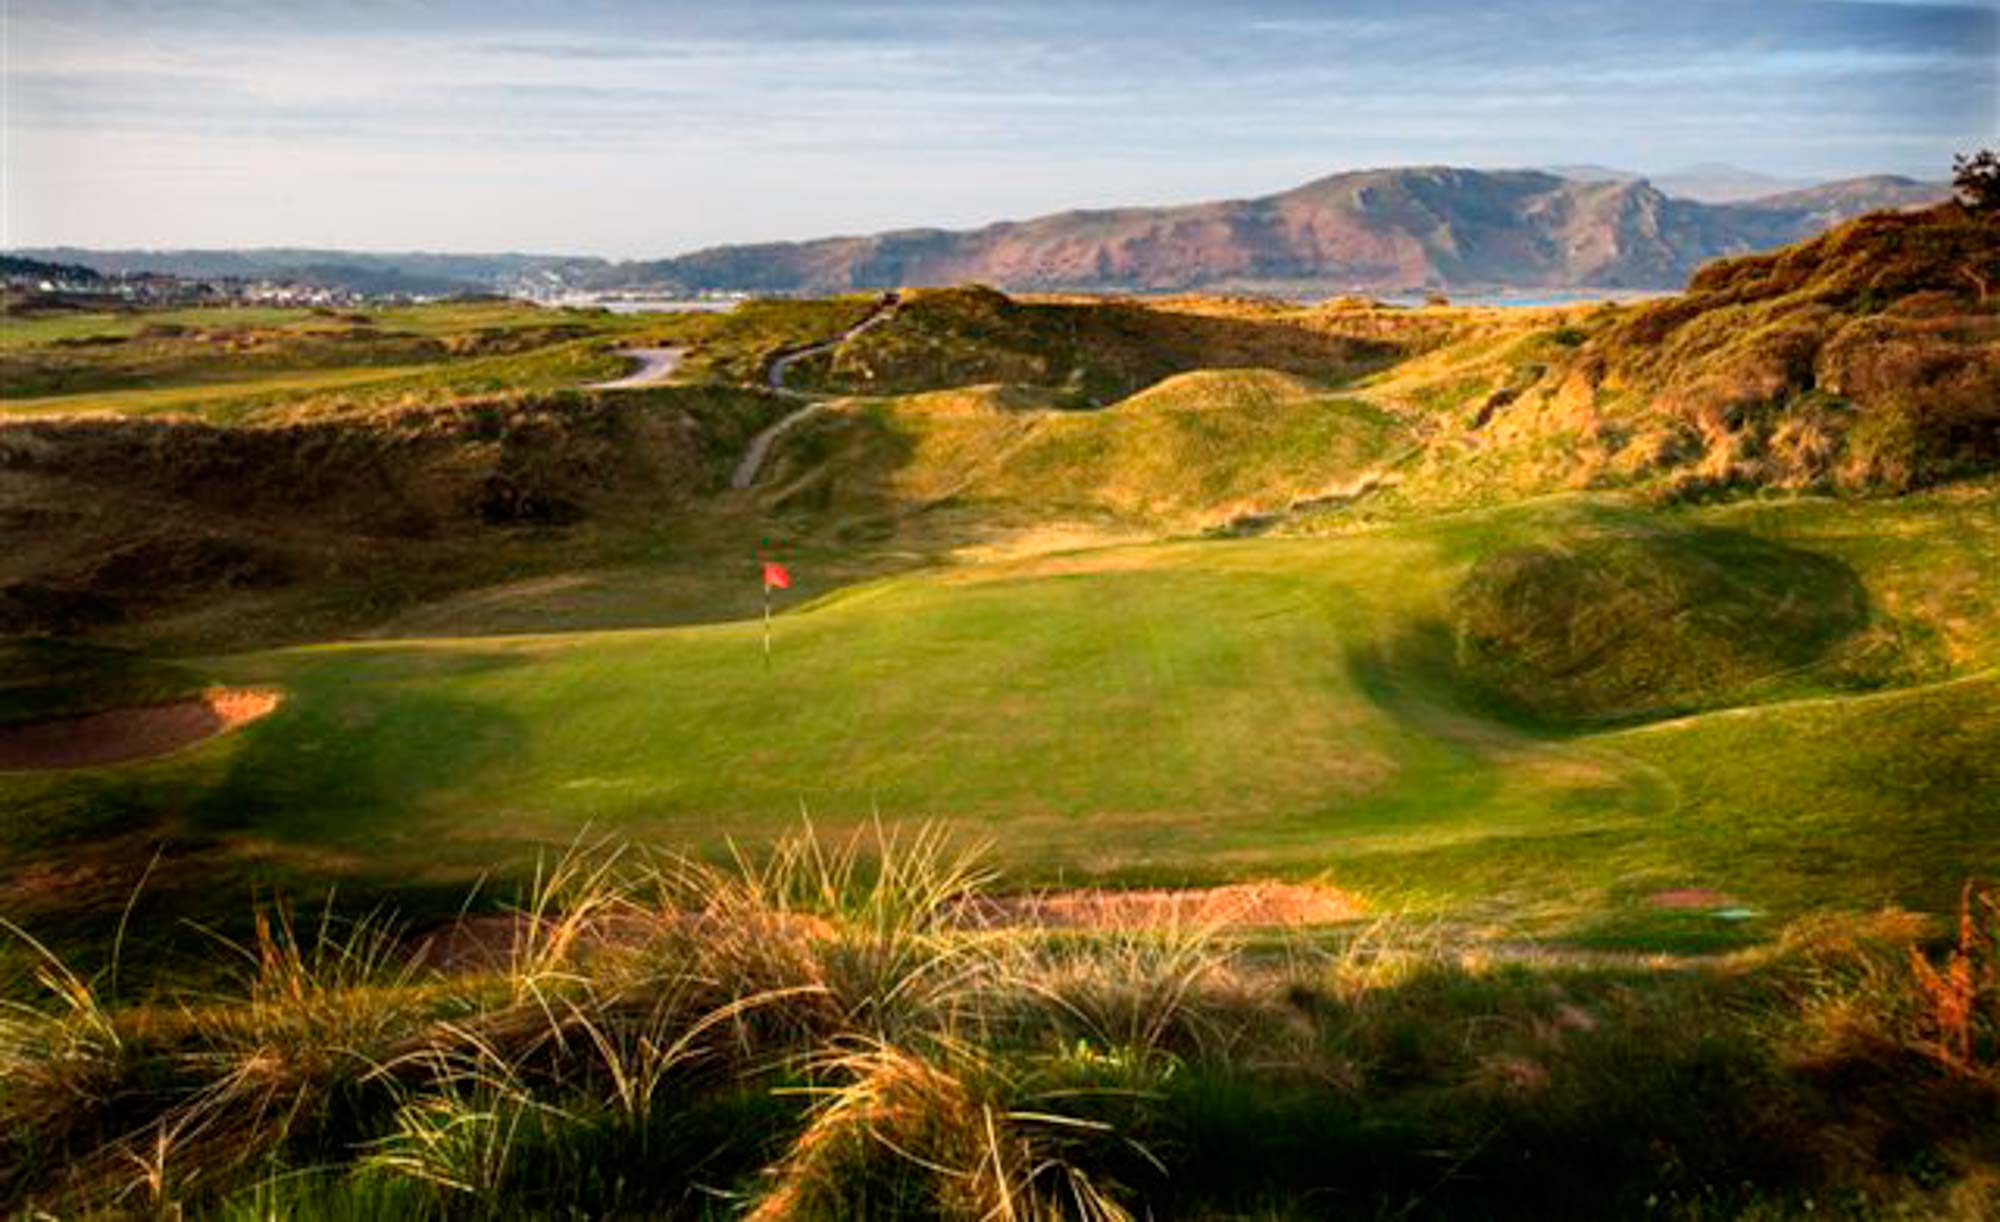 The 17th hole at North Wales Golf Club.